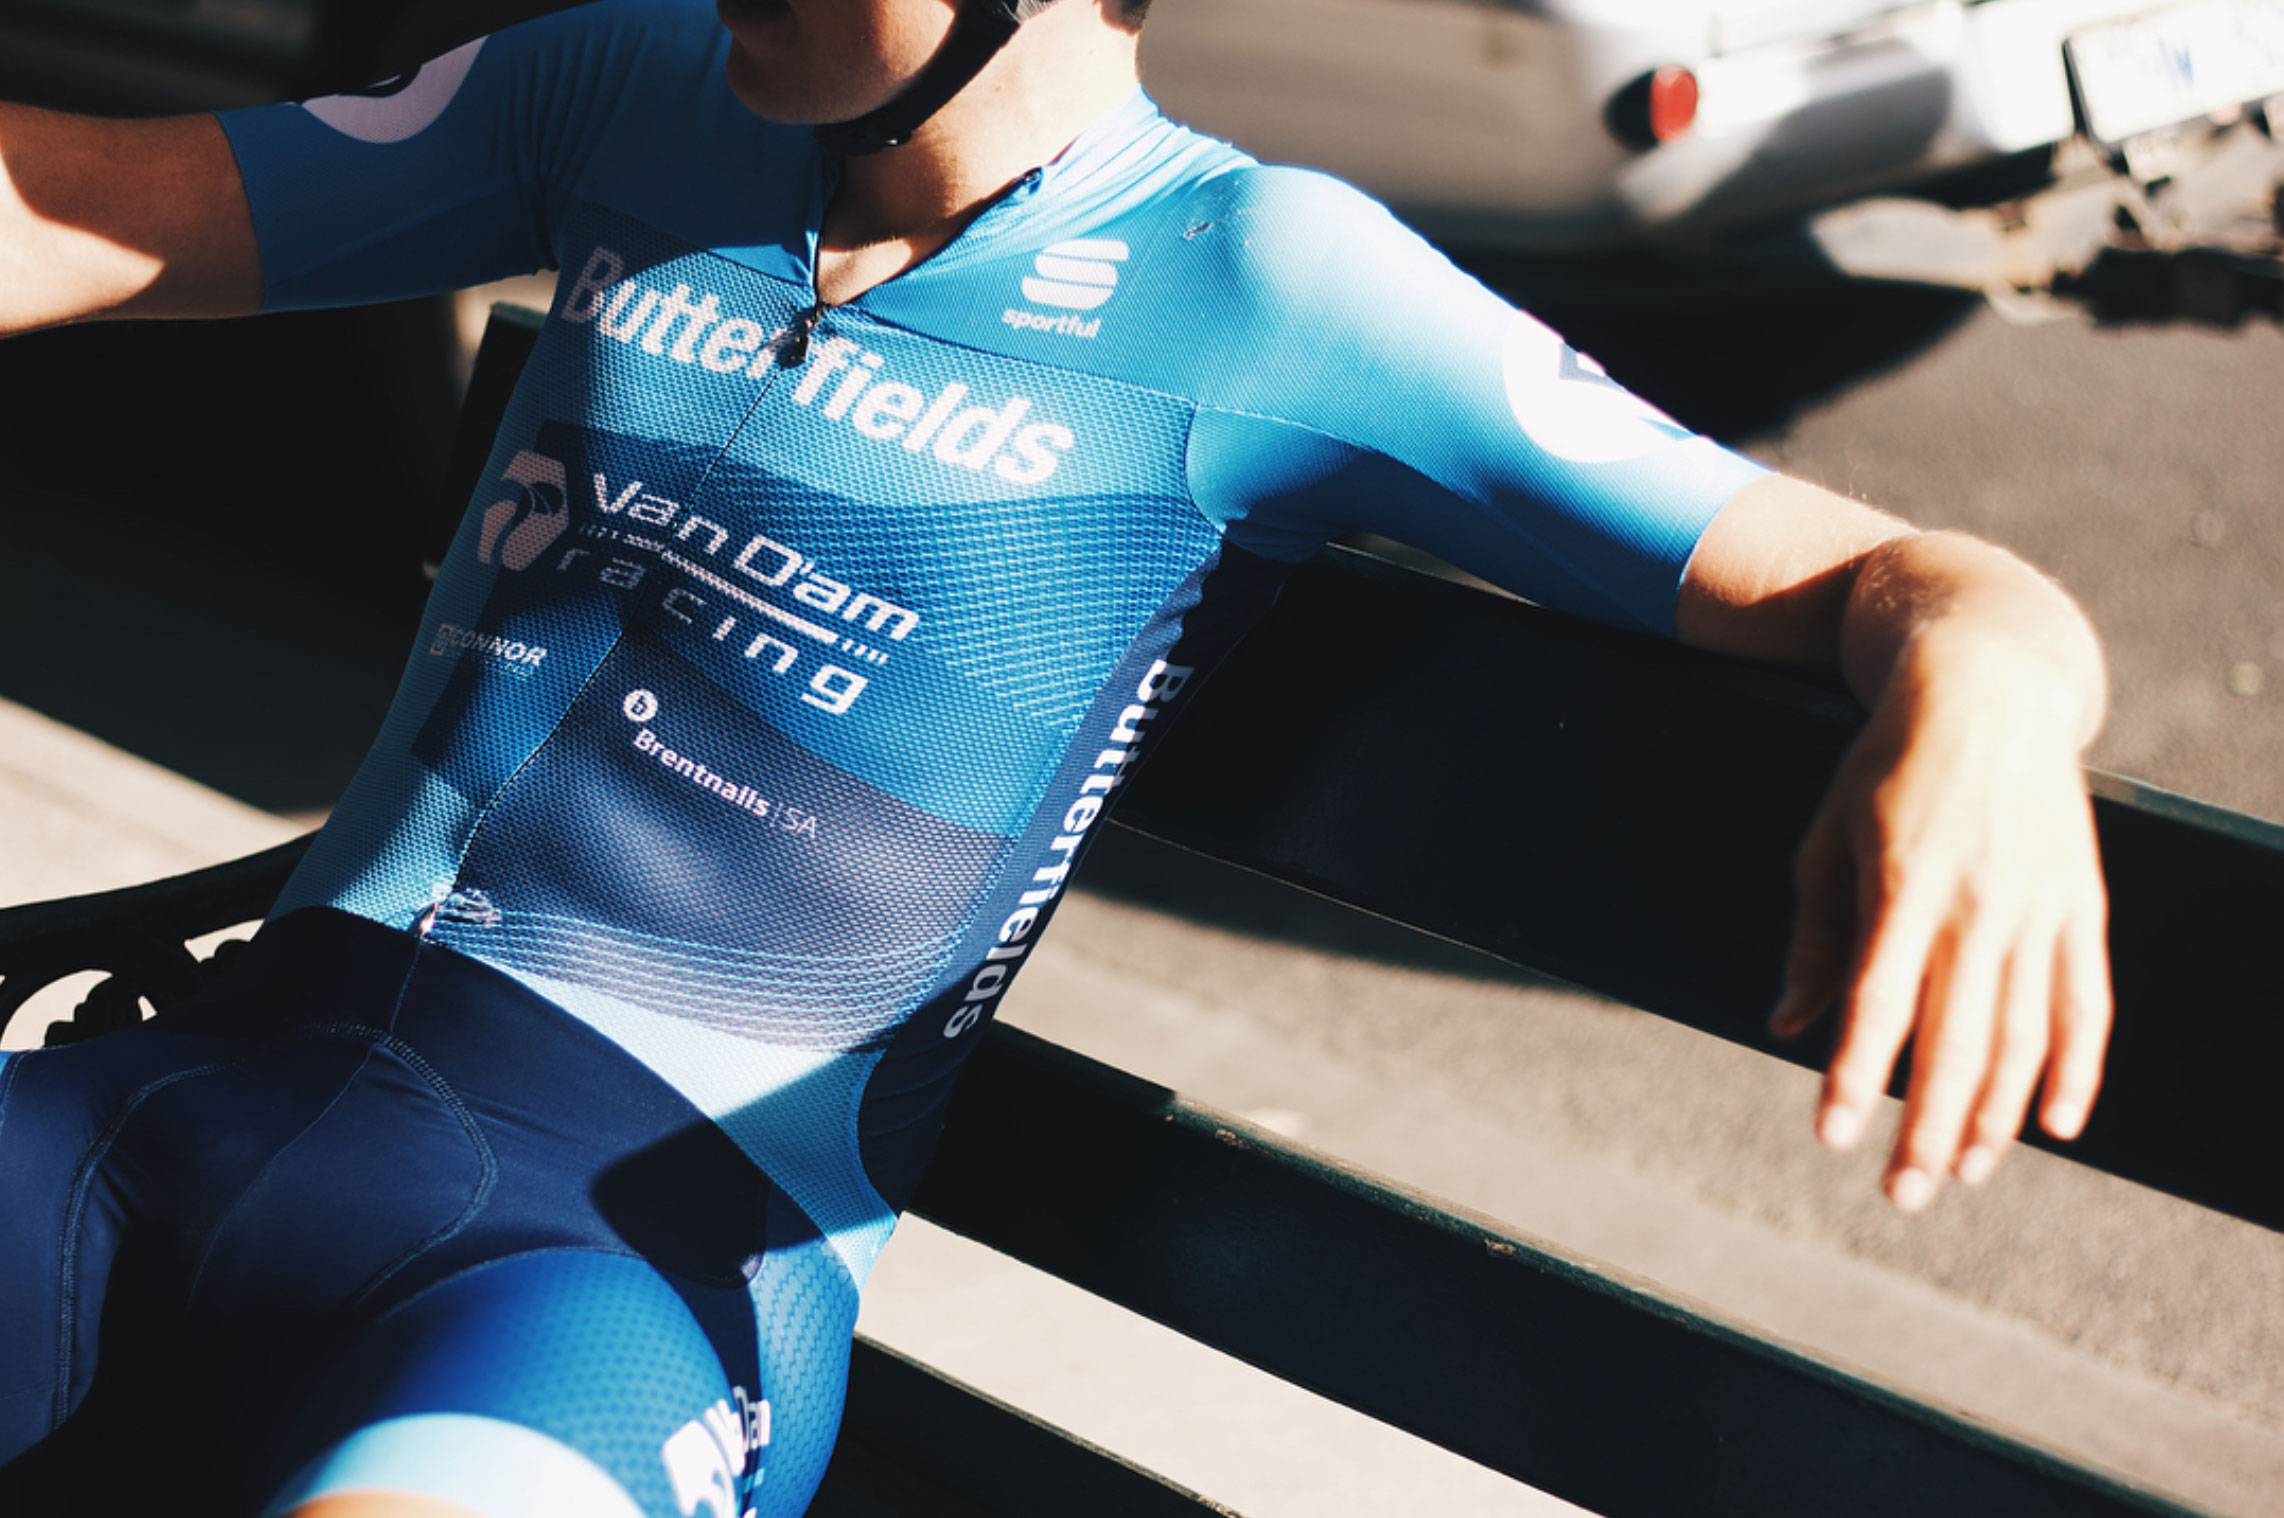 Van D'am Cycling kit 2017 - created by South